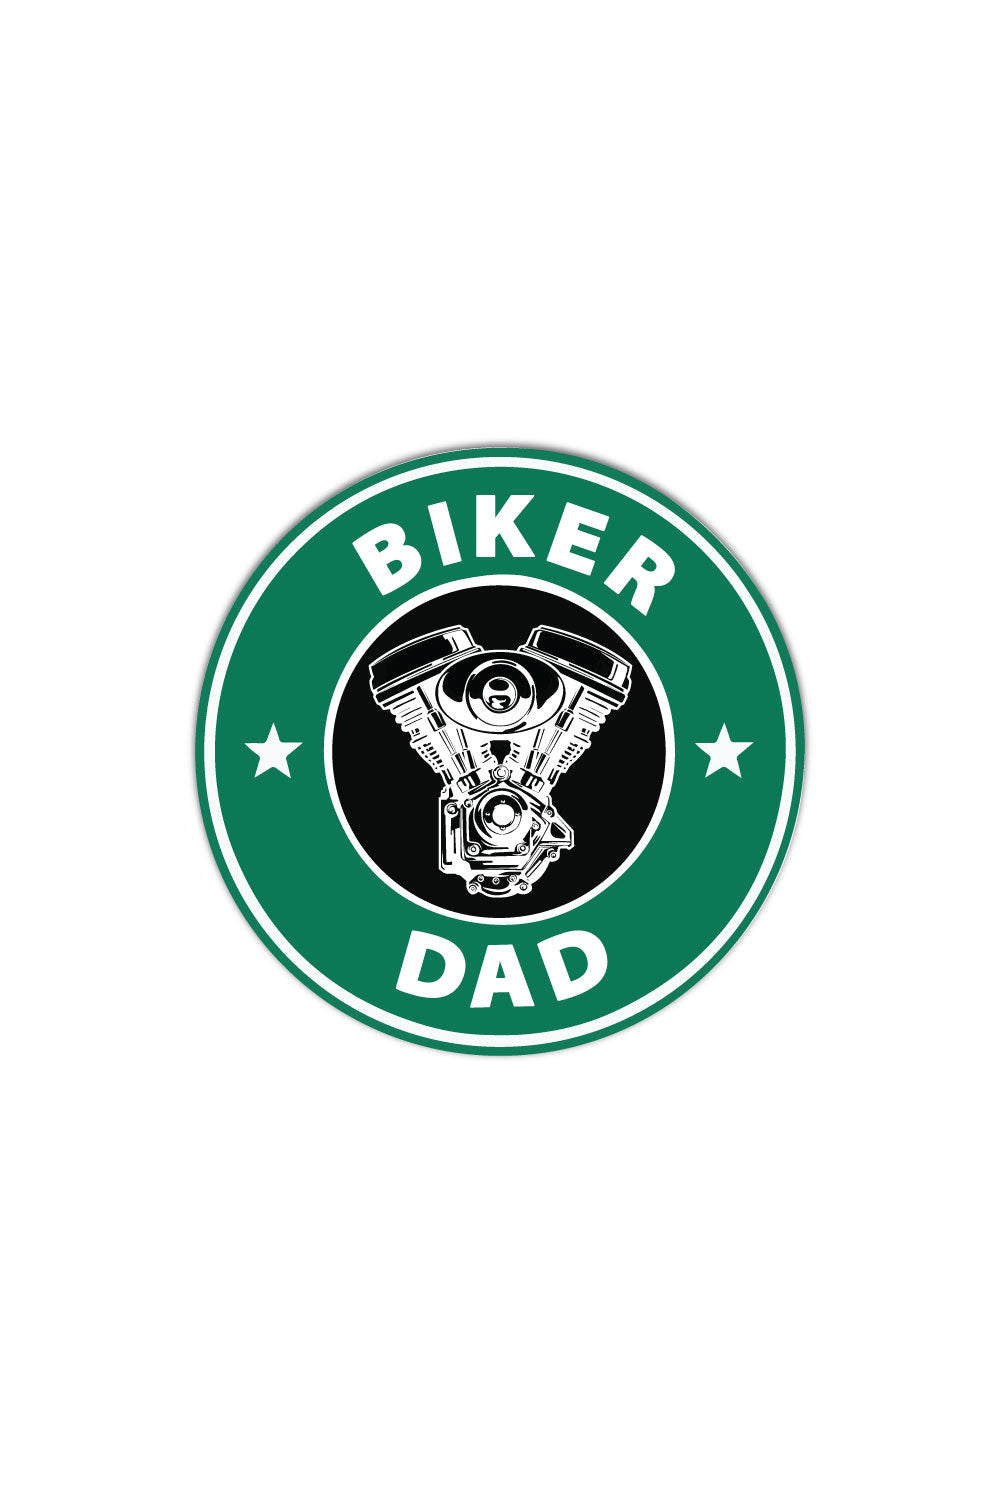 Biker Dad Sticker - ChrisCross.in